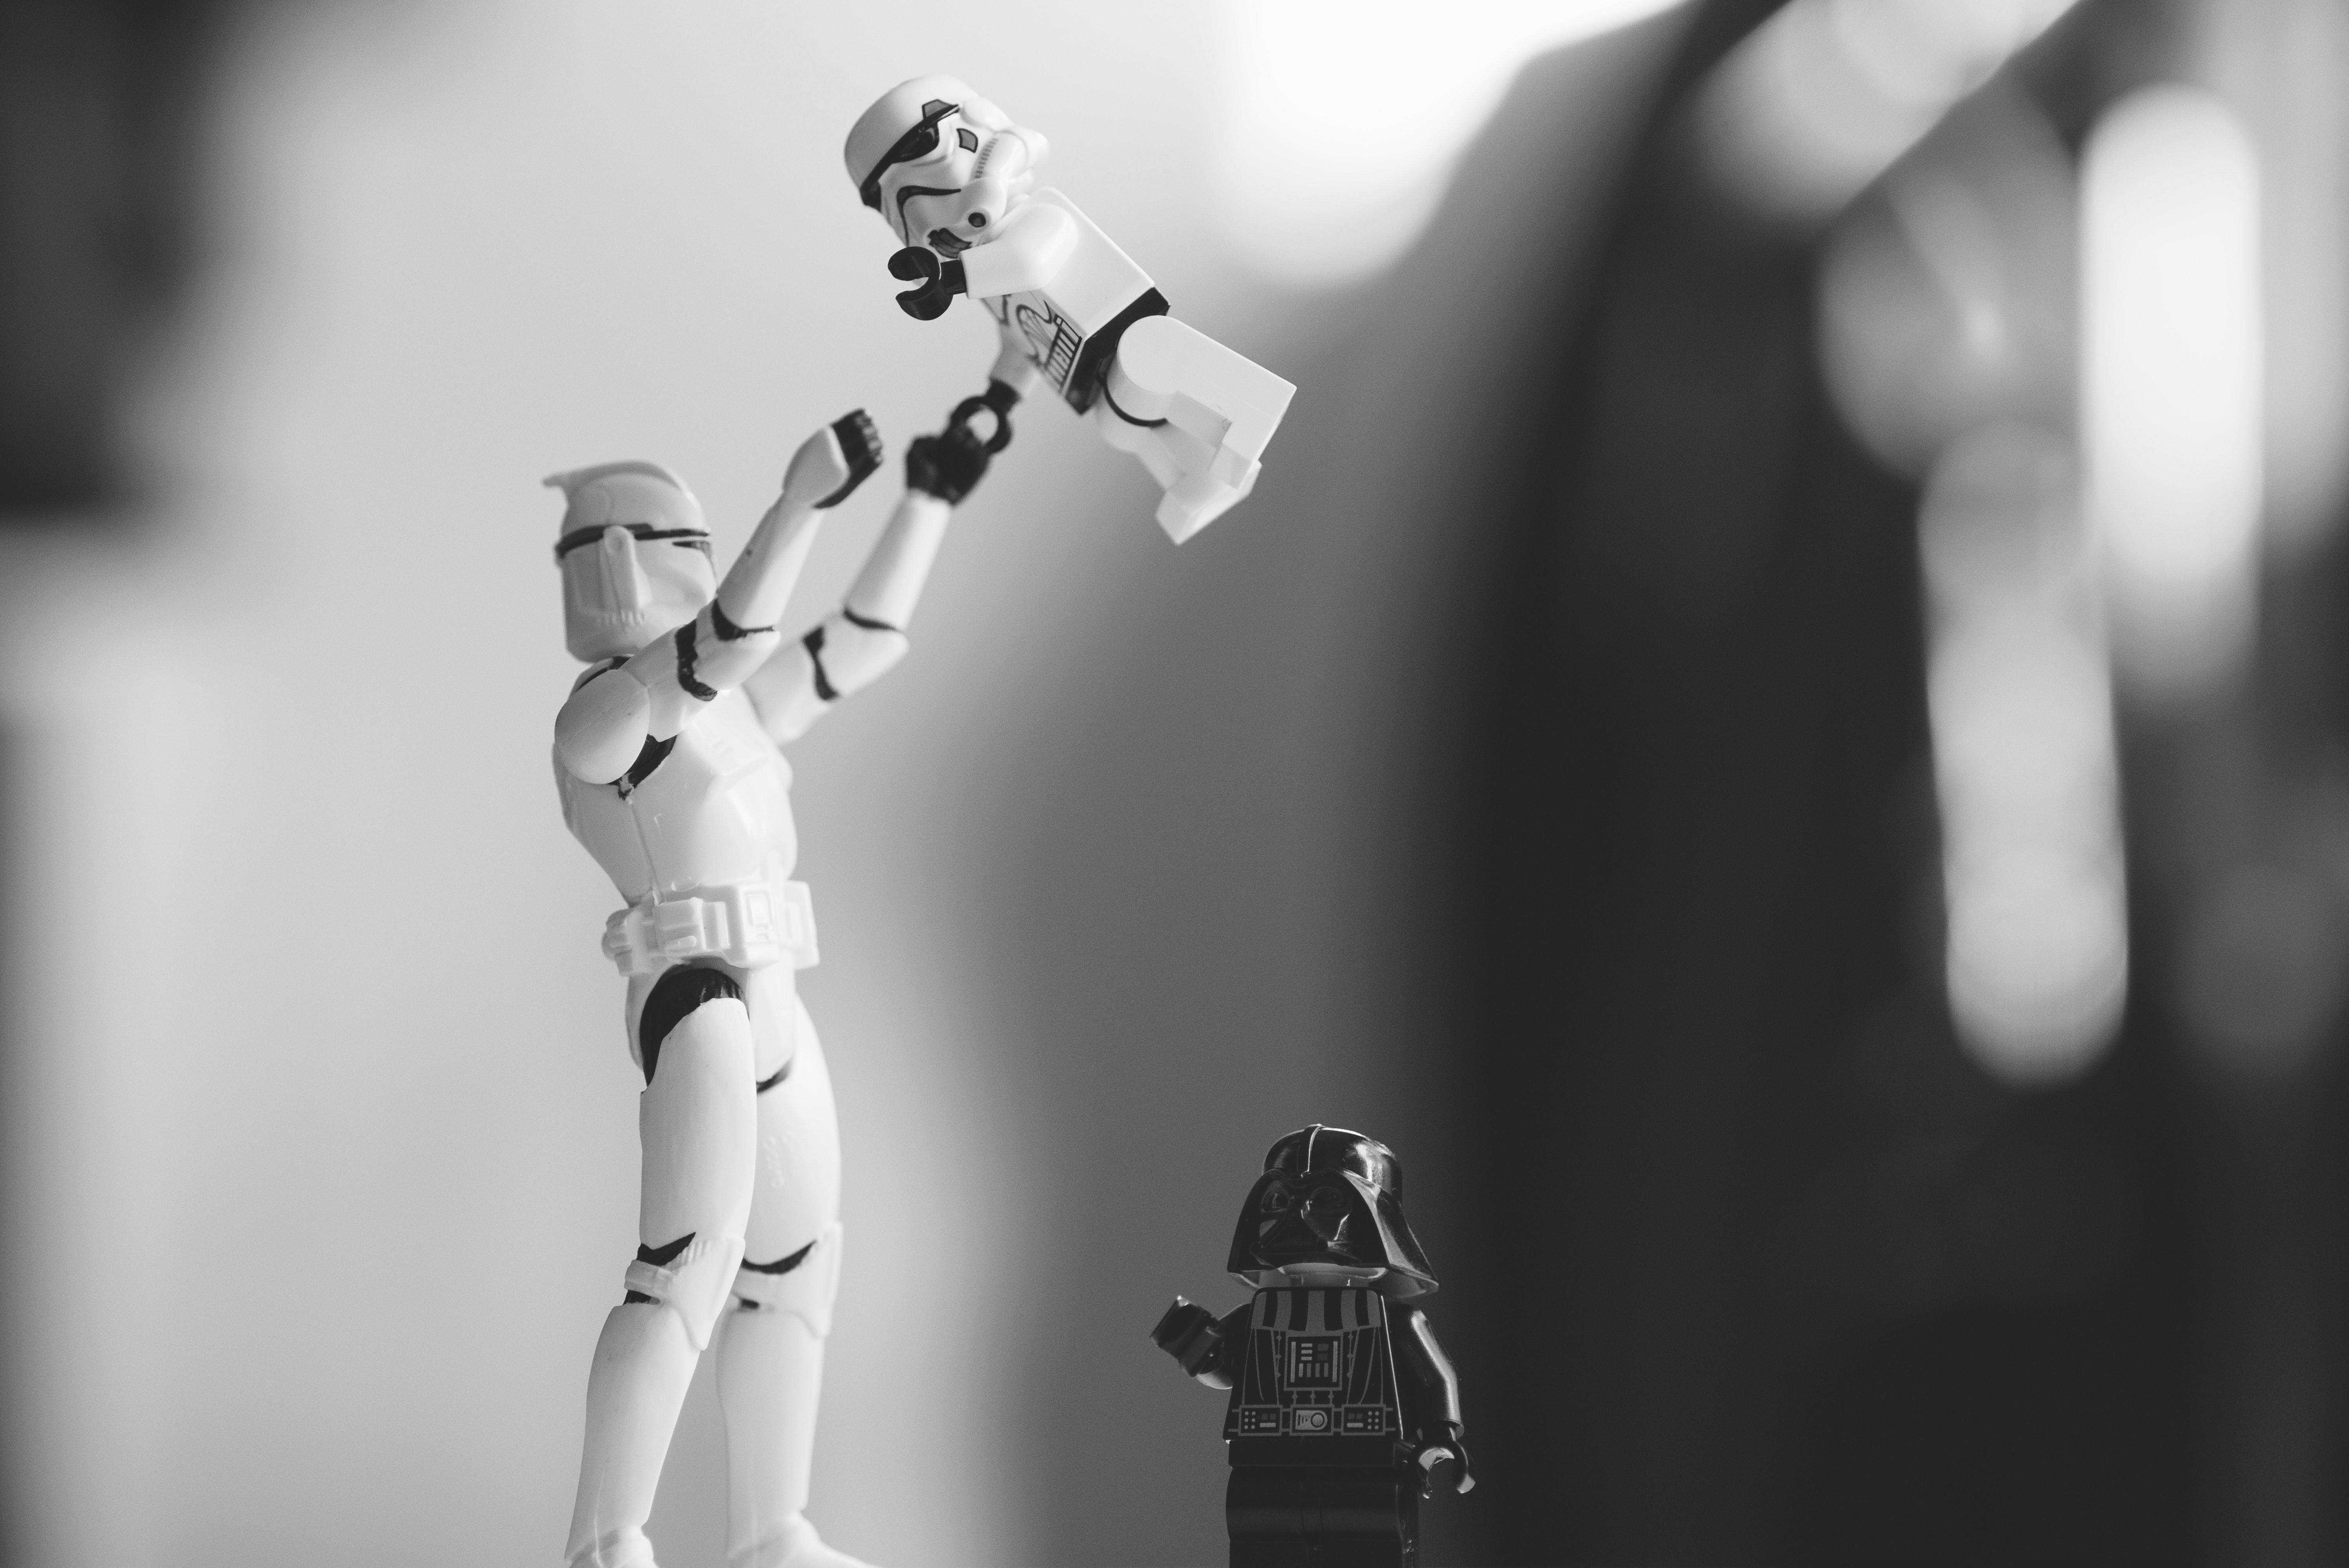 Black and white shot of toy star wars storm trooper and Darth Vader from Star Wars figures in motion